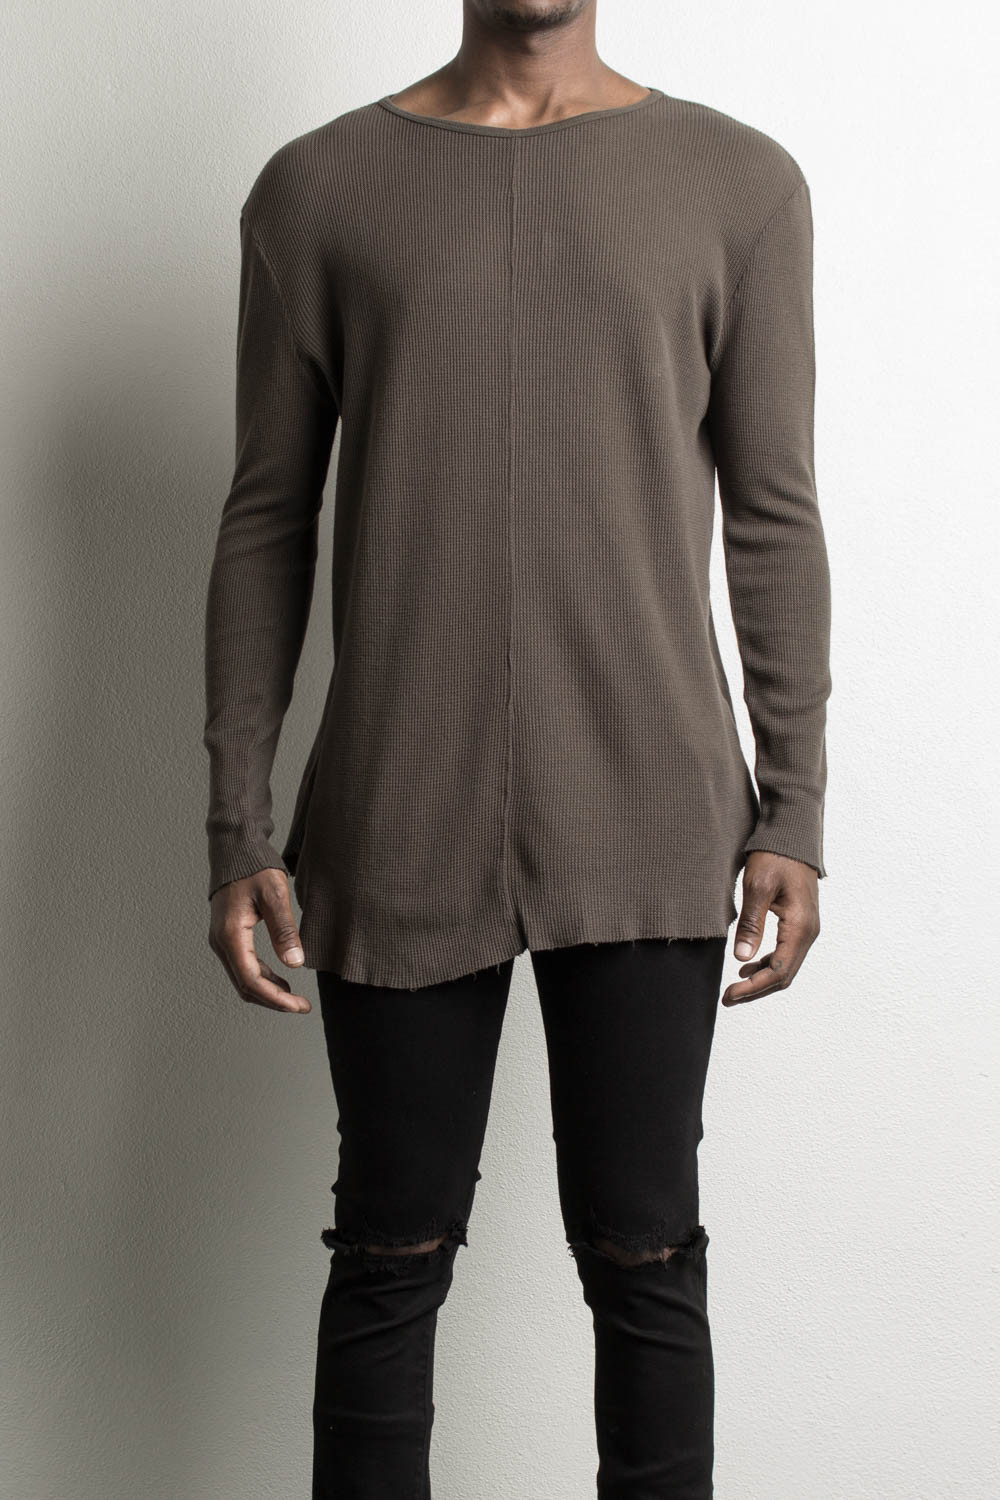 daniel-patrick-crew-2-ii-thermal-shirt